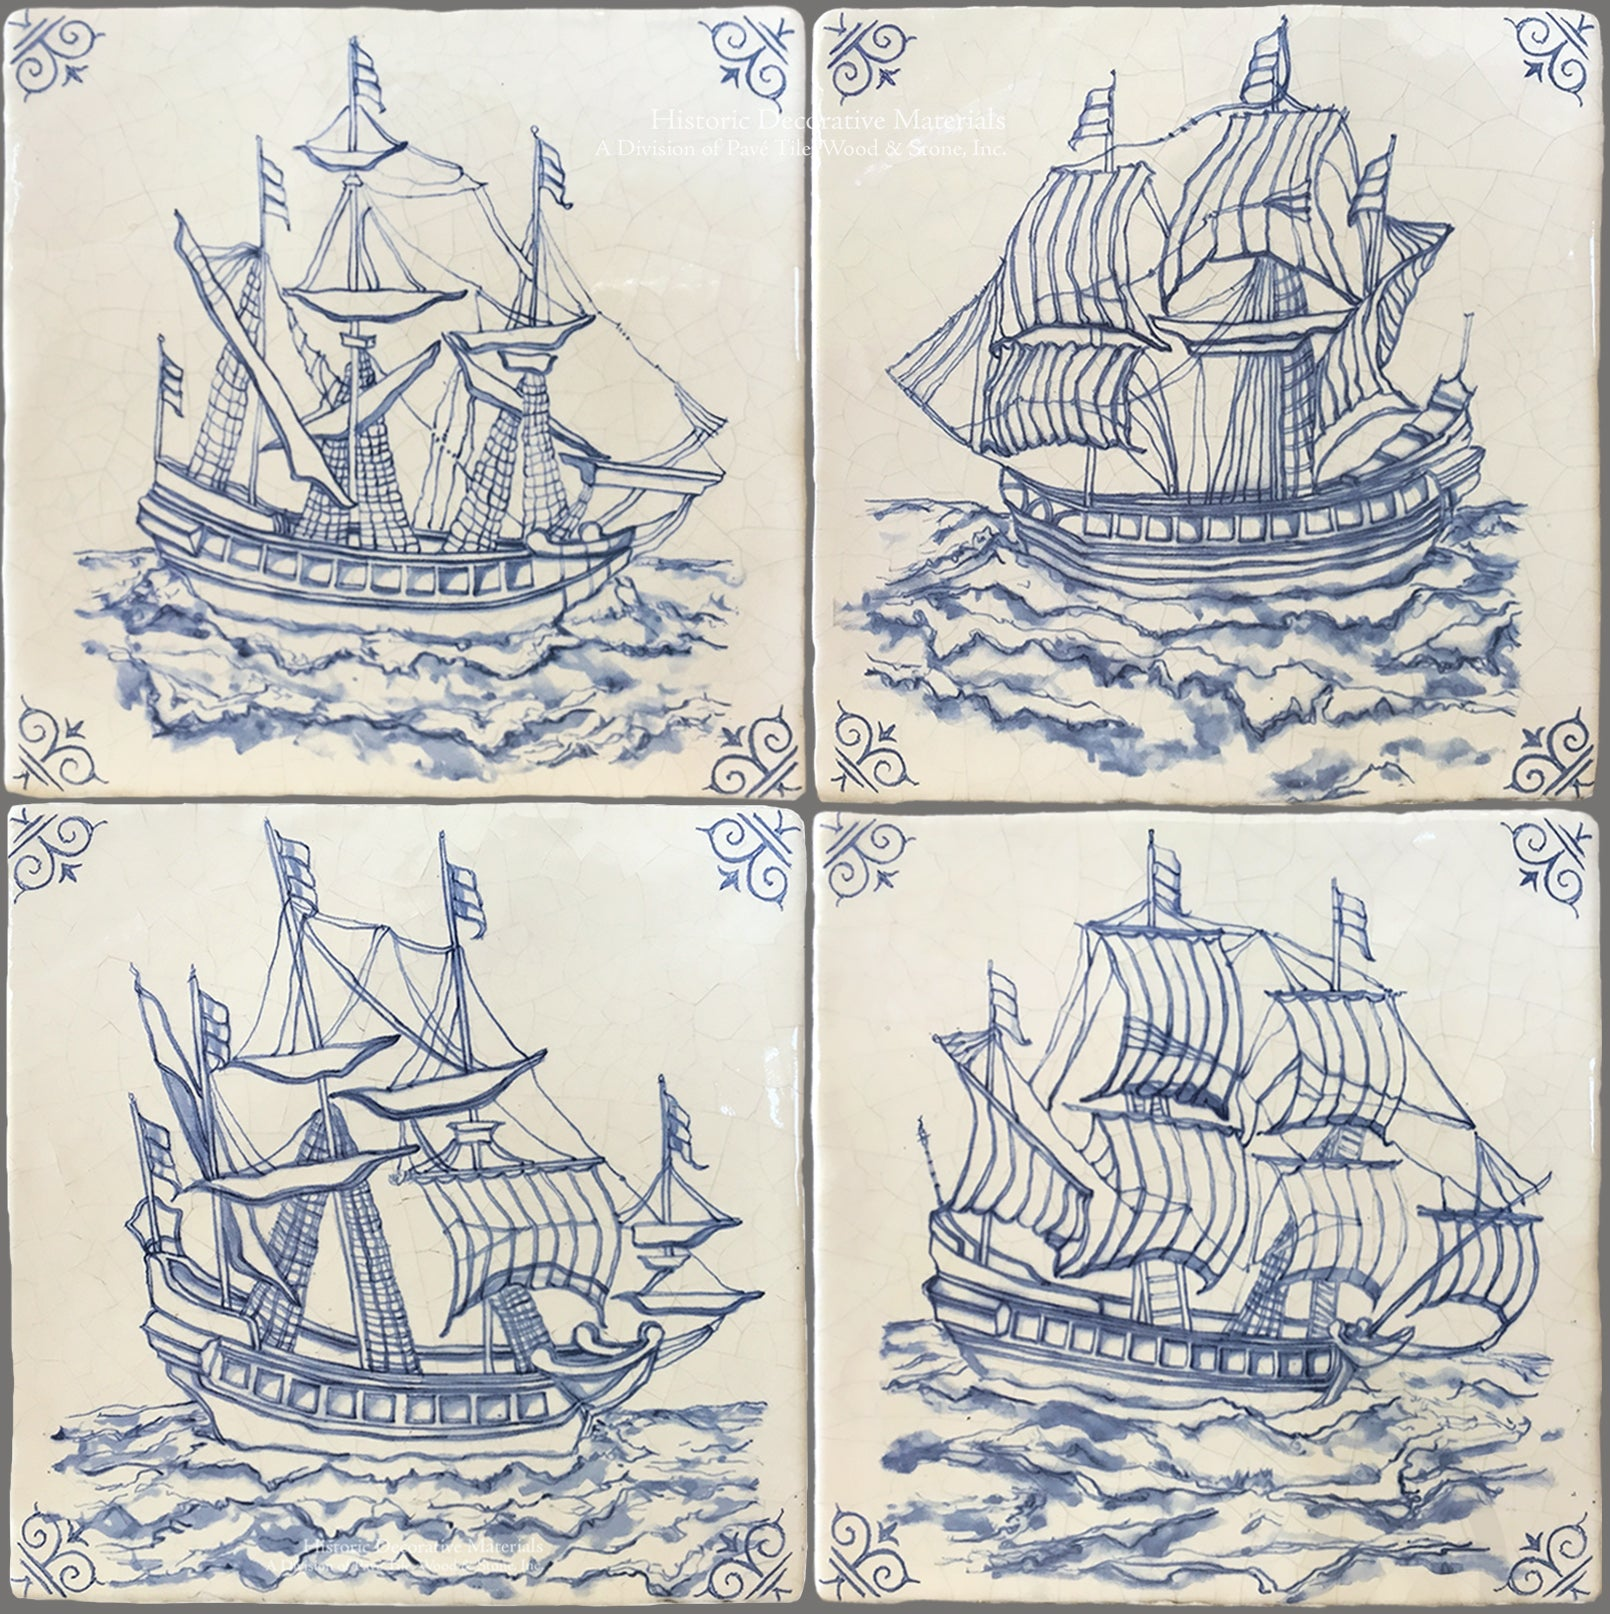 Dutch blue antique hand painted Delft Tile Ships are for the kitchen backsplash, fireplace surround and bathrooms that interior designers choose for historic, old world interior designs